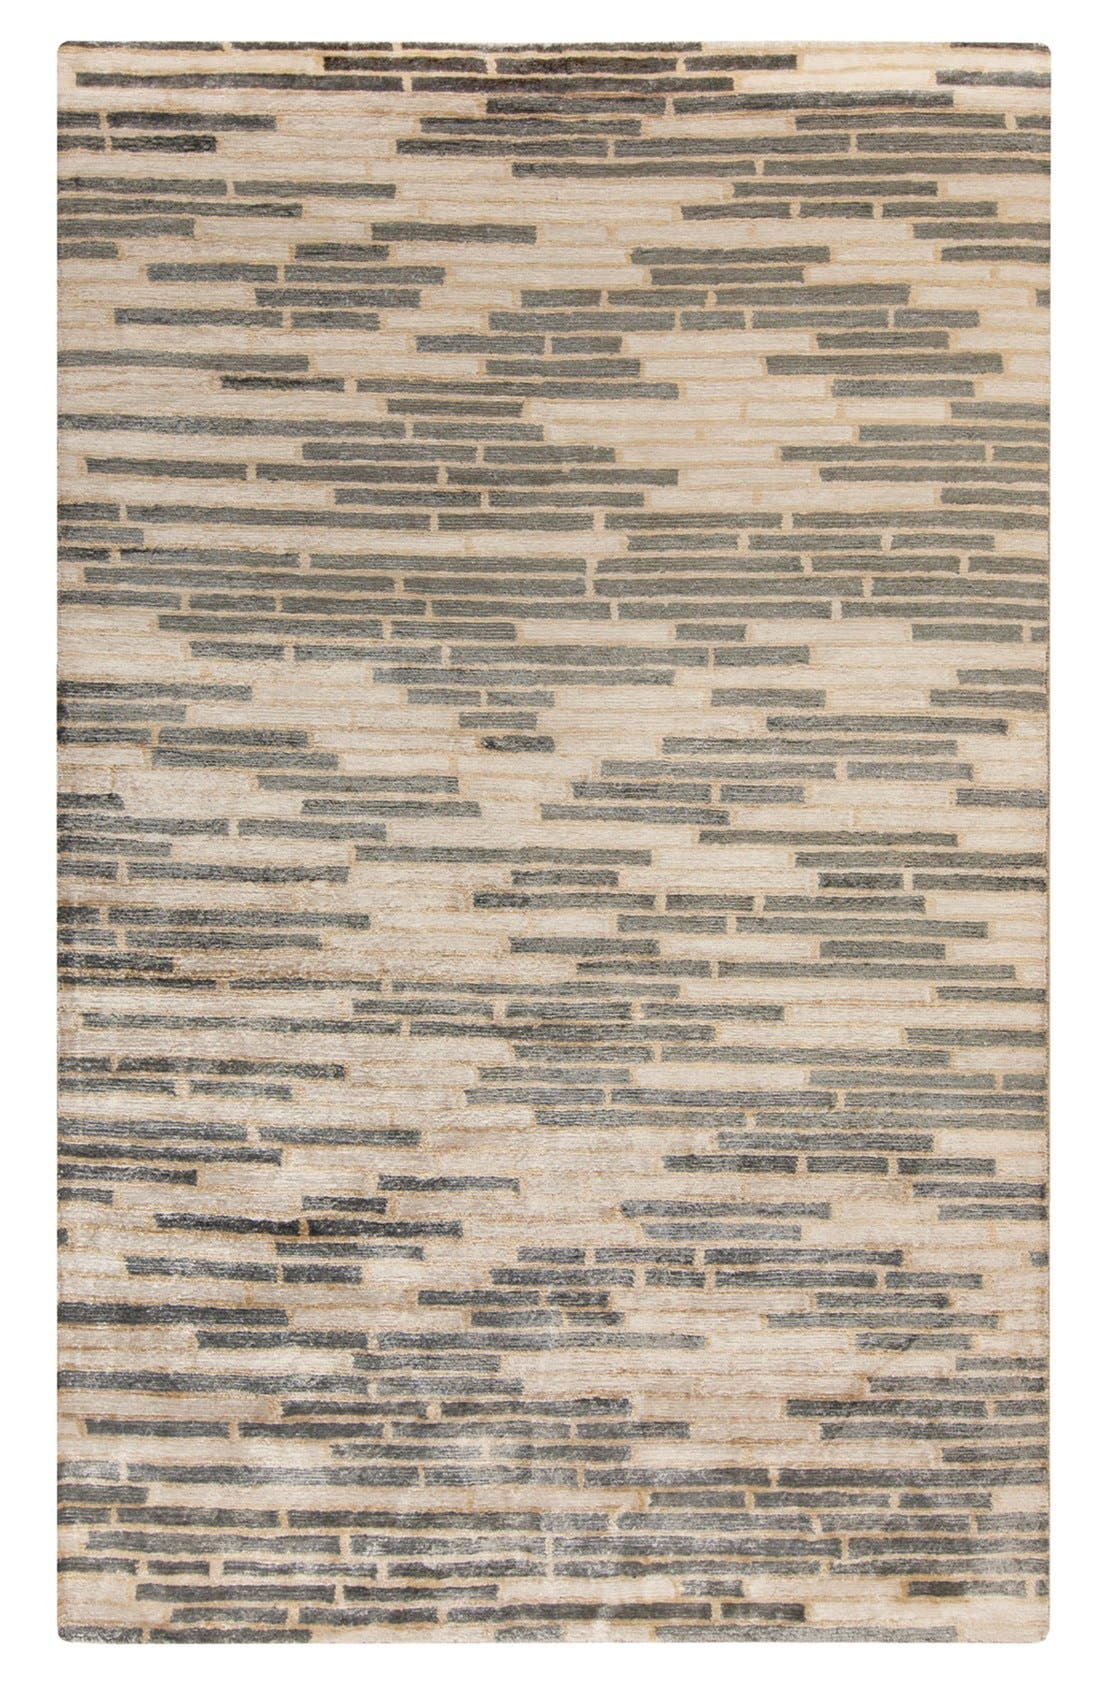 'Platinum' Hand Tufted Rug,                             Main thumbnail 1, color,                             CHARCOAL/ BEIGE/ IVORY